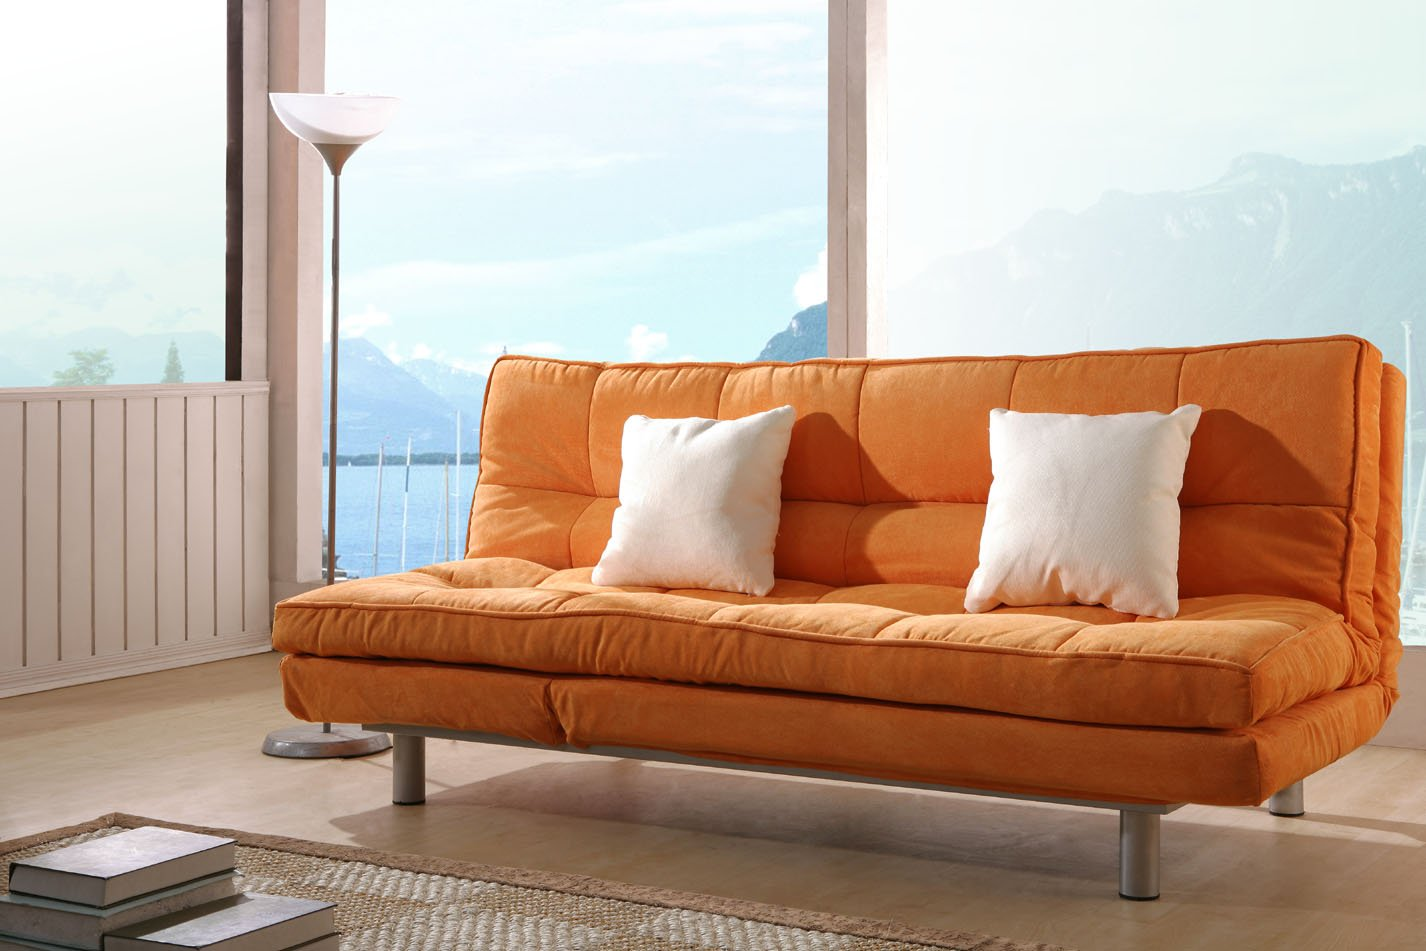 These Sleek Sofas Can Be Bent Back To Make A Flat Bed, Most Suited For  Single Person Usage.